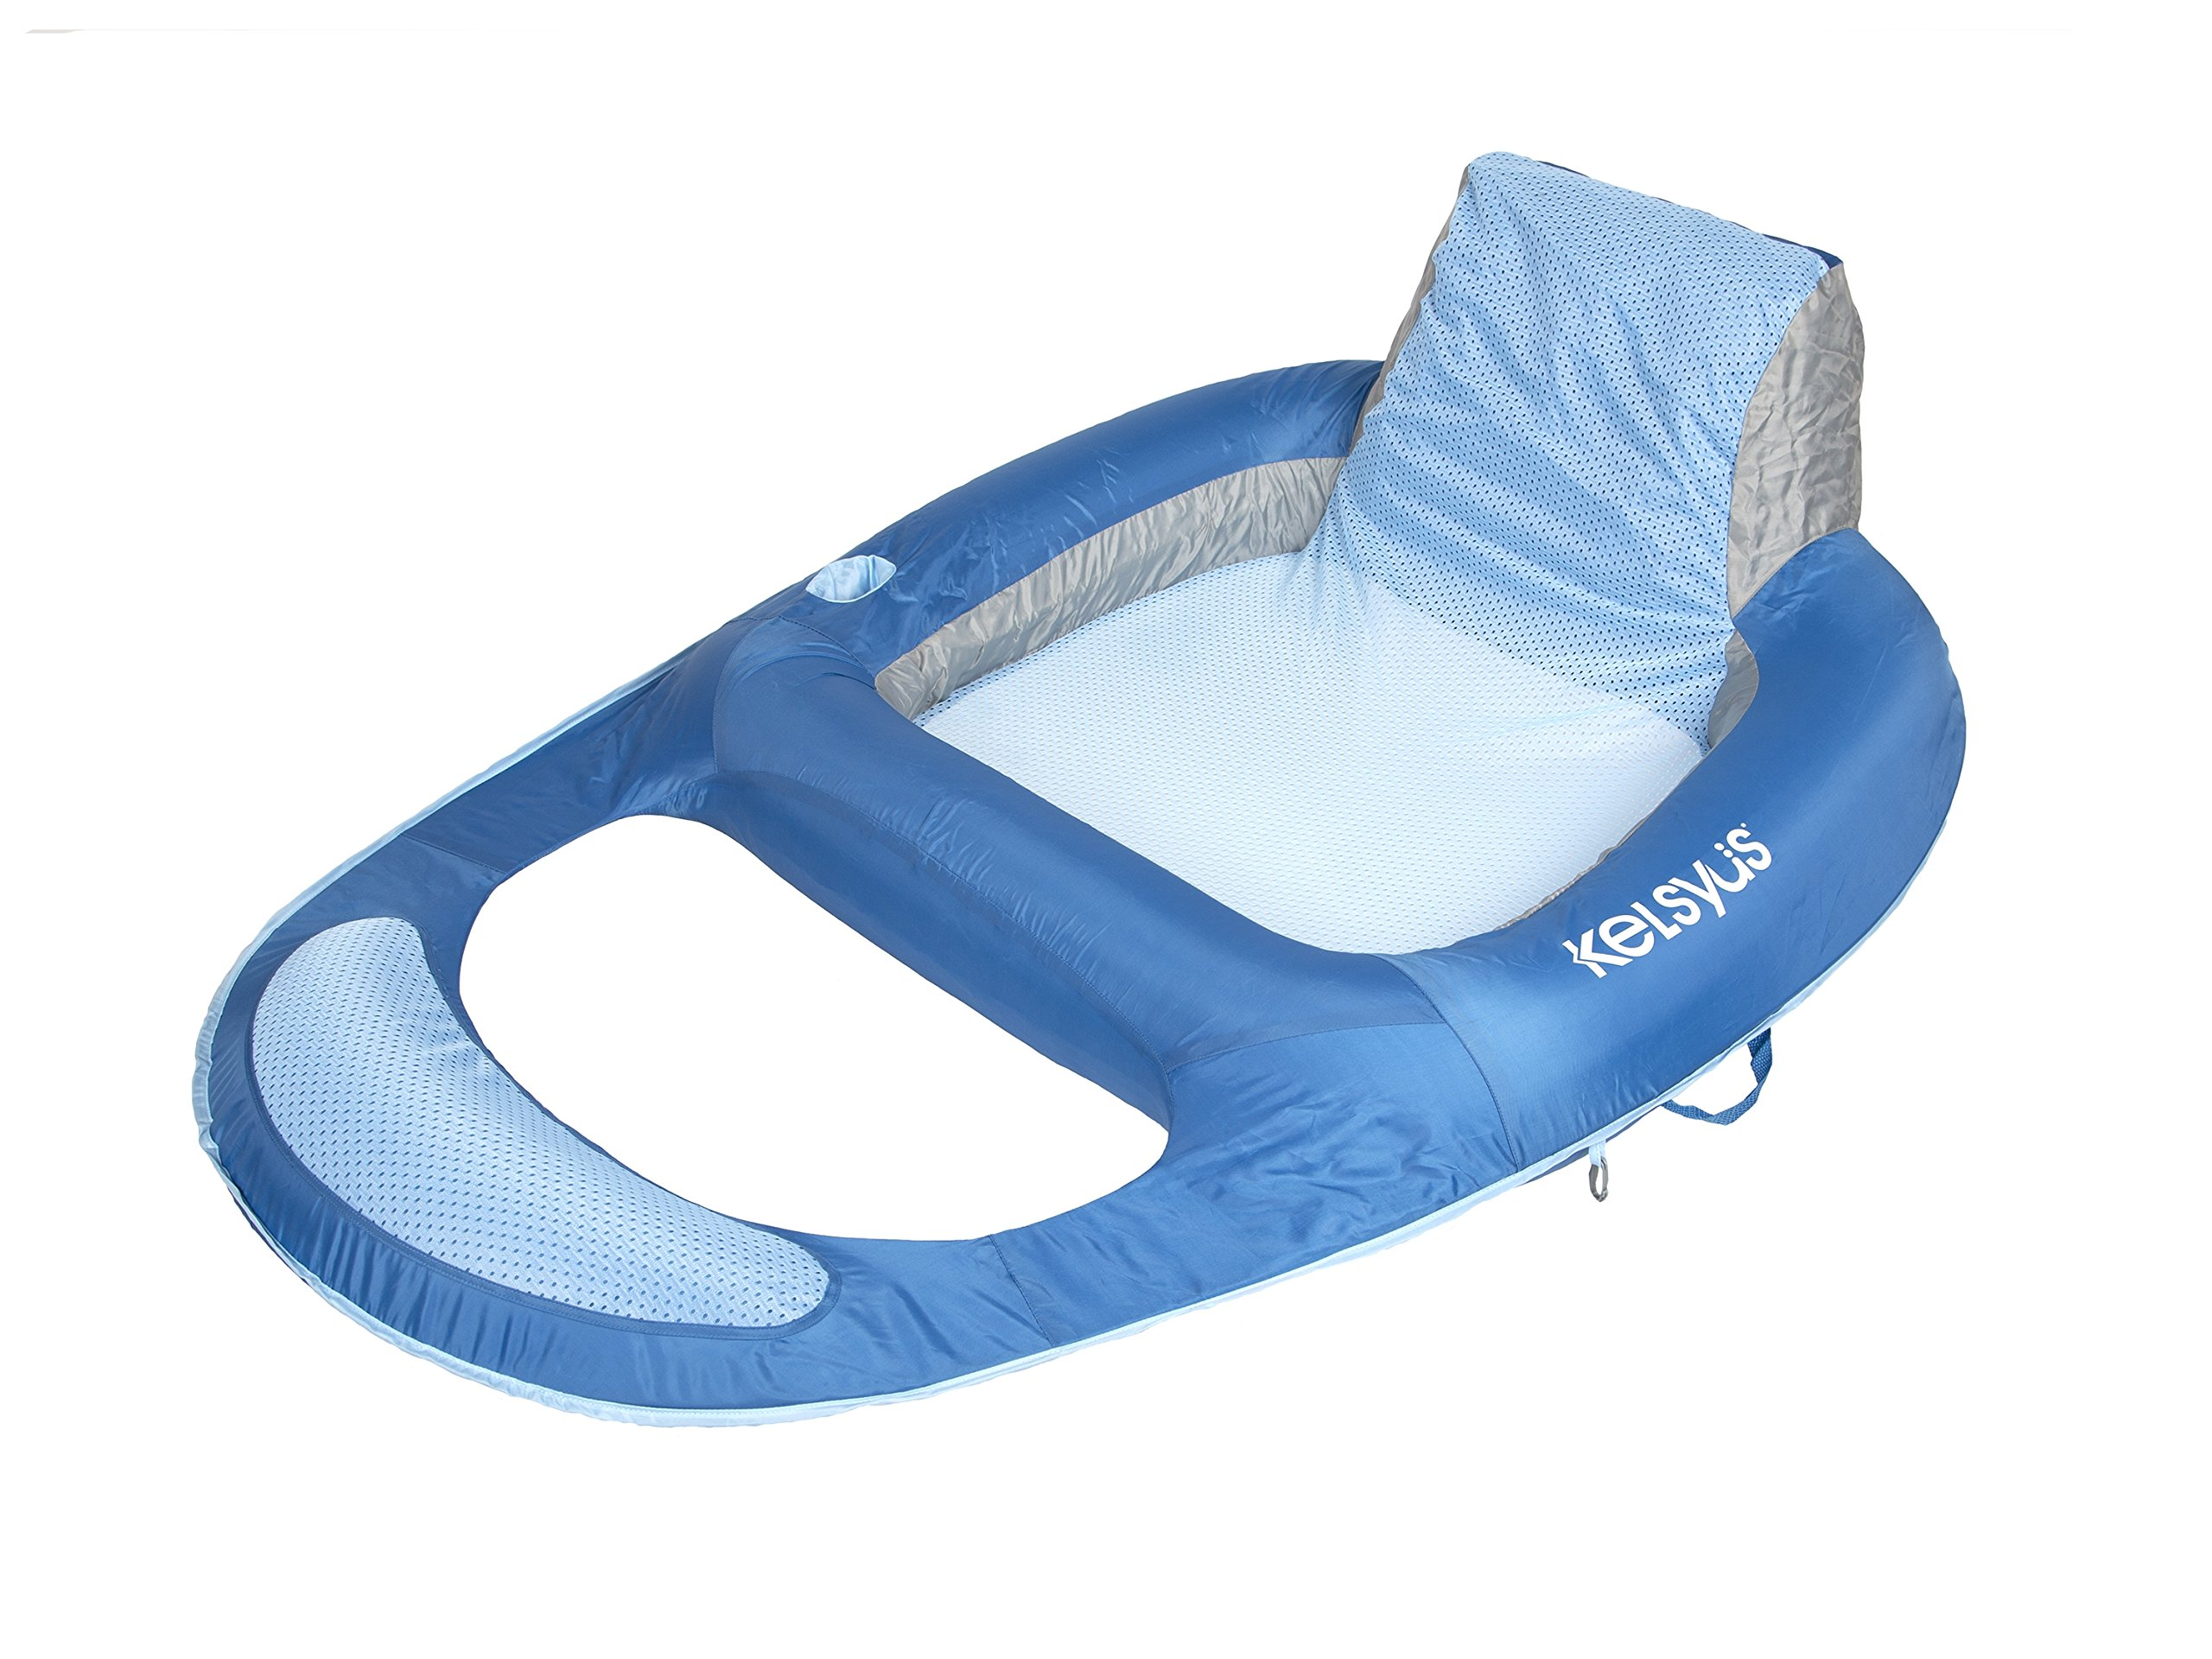 Best Rated in Swimming Pool Loungers & Helpful Customer Reviews